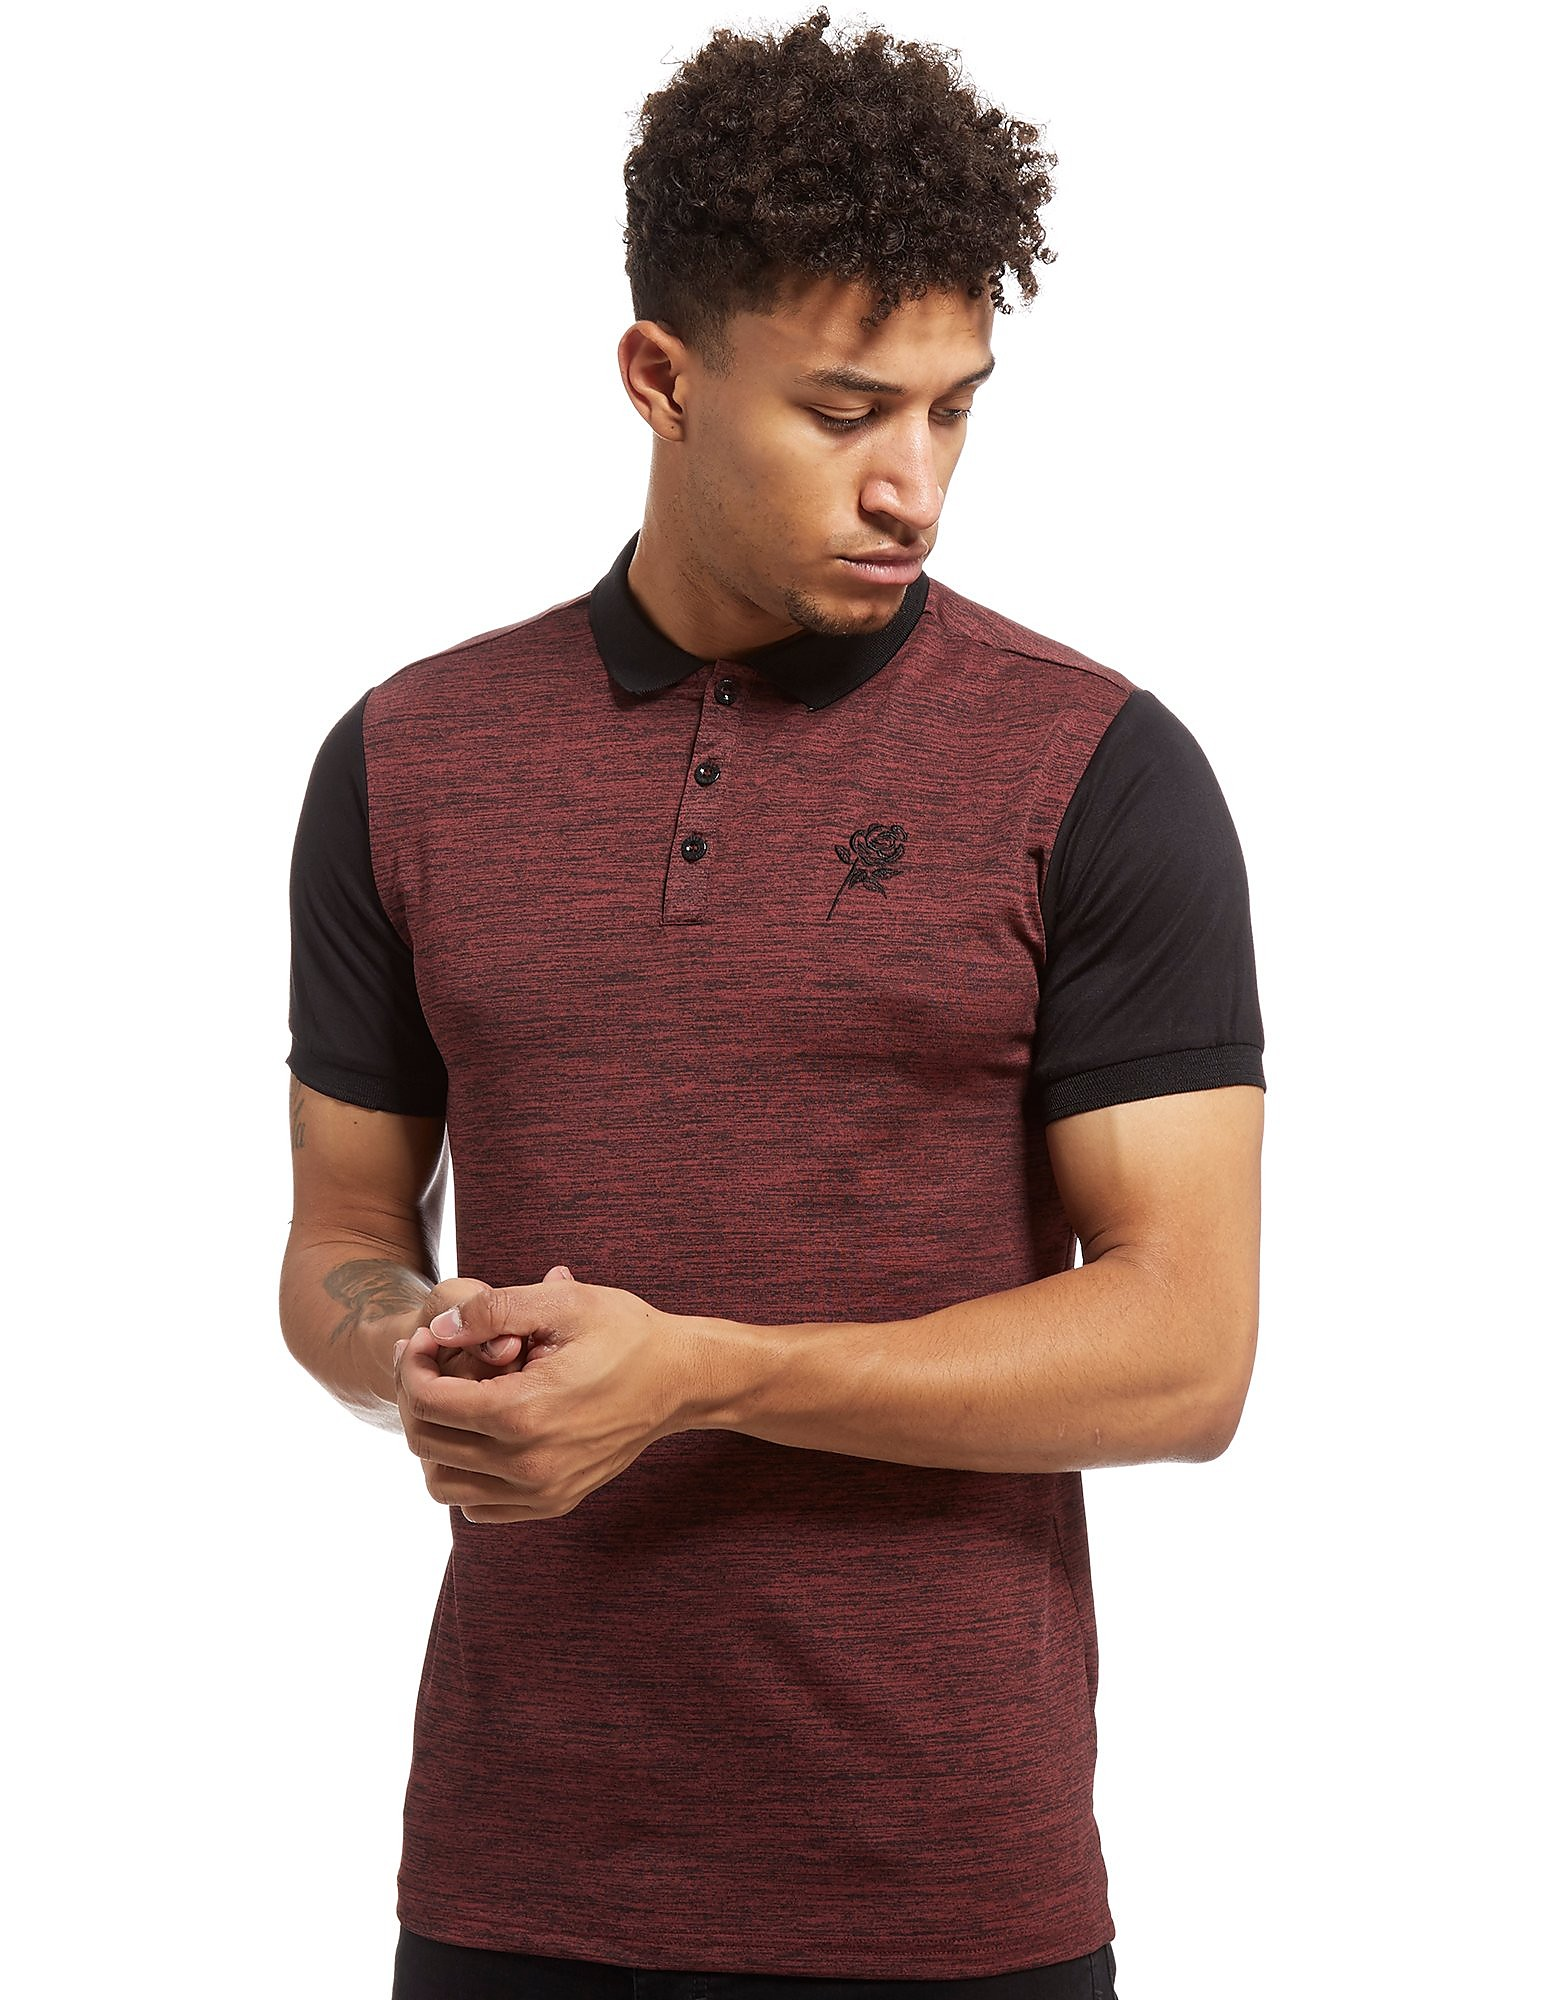 Supply & Demand Royal Polo Shirt - Only at JD, Burgundy/Black